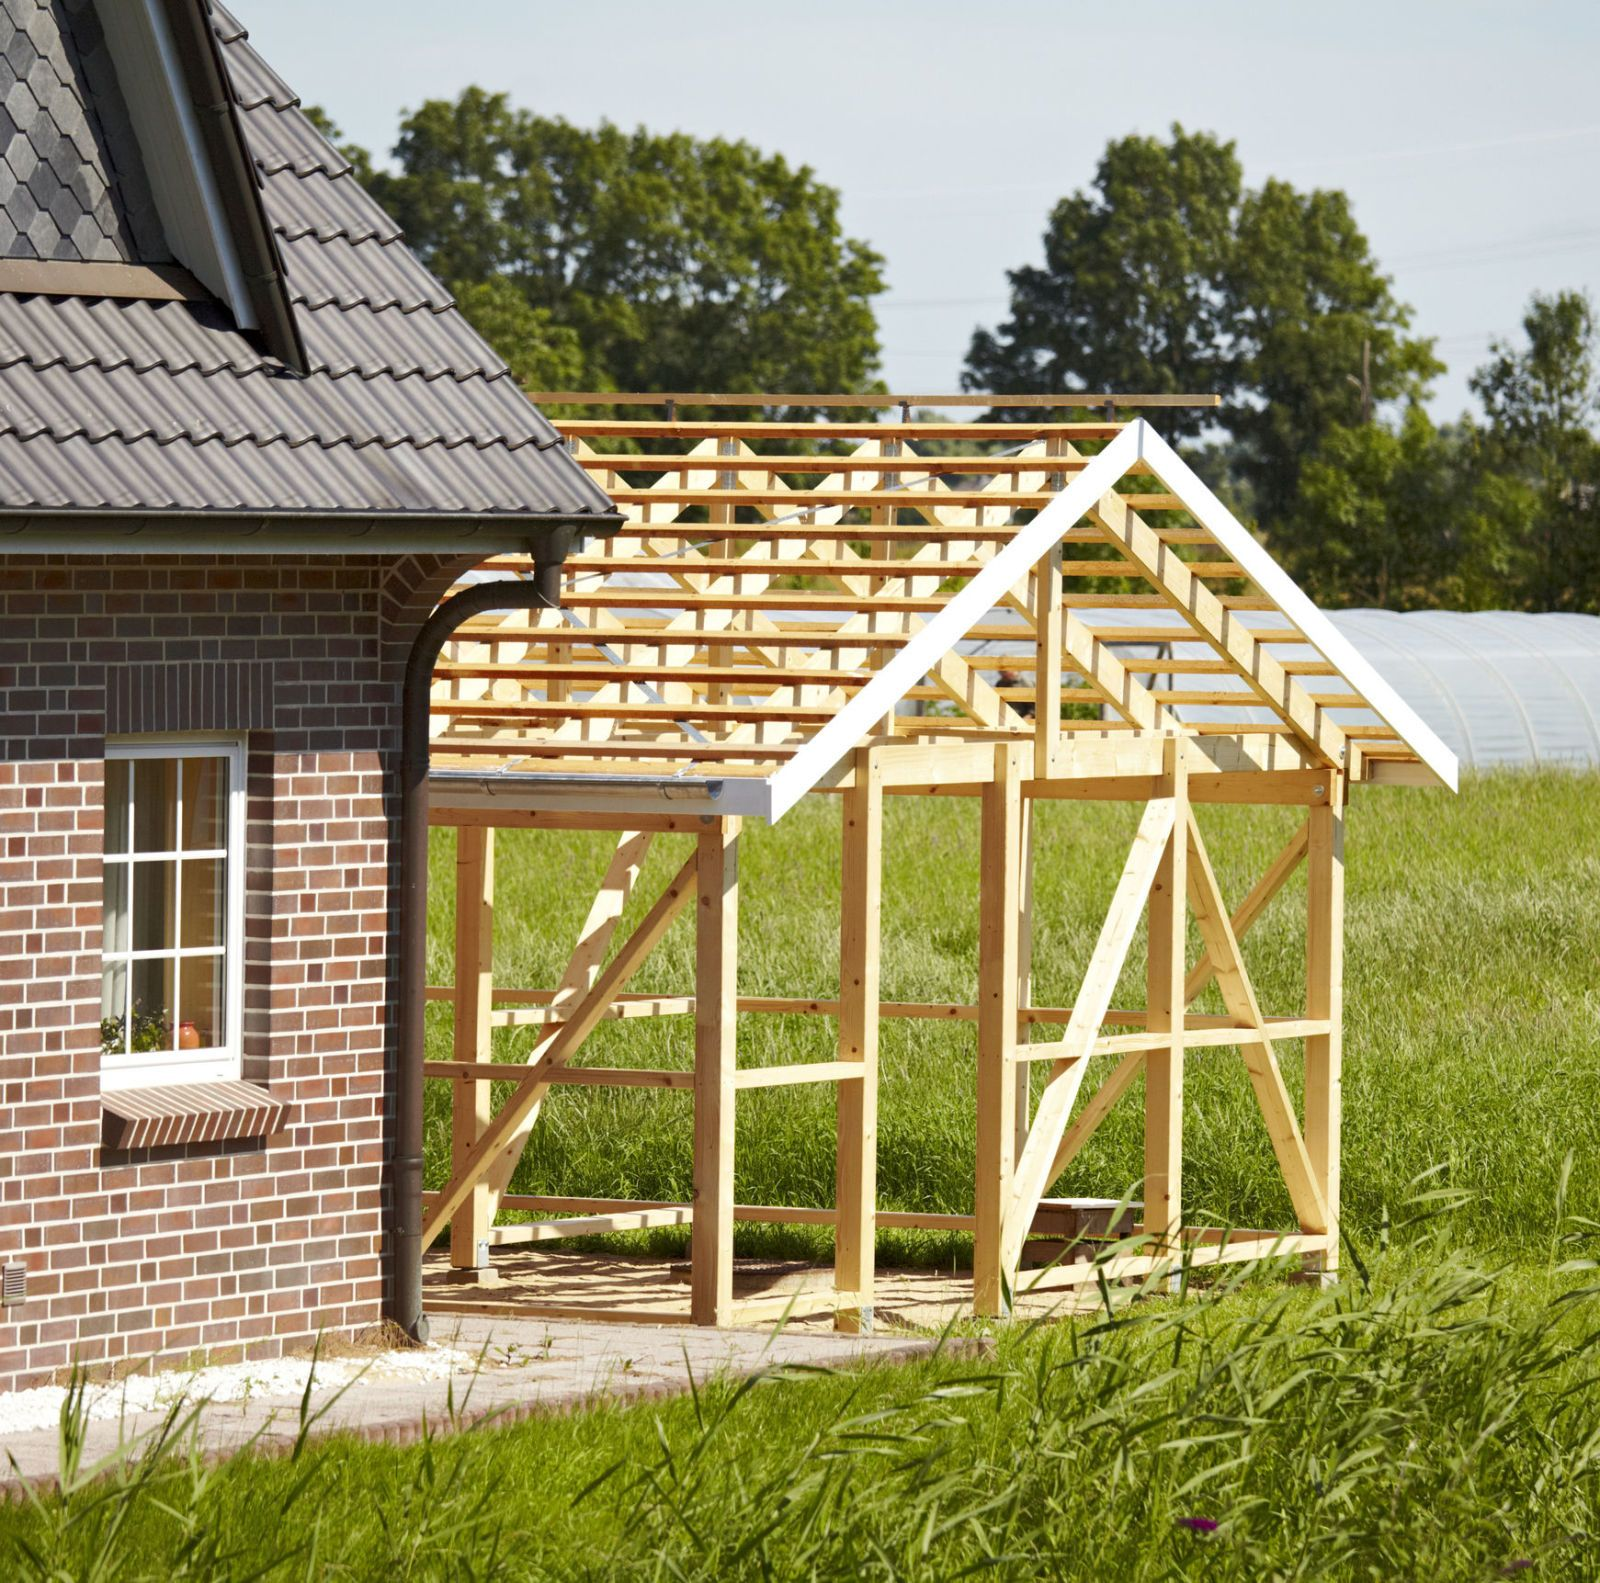 Planning permission how to ensure your application is